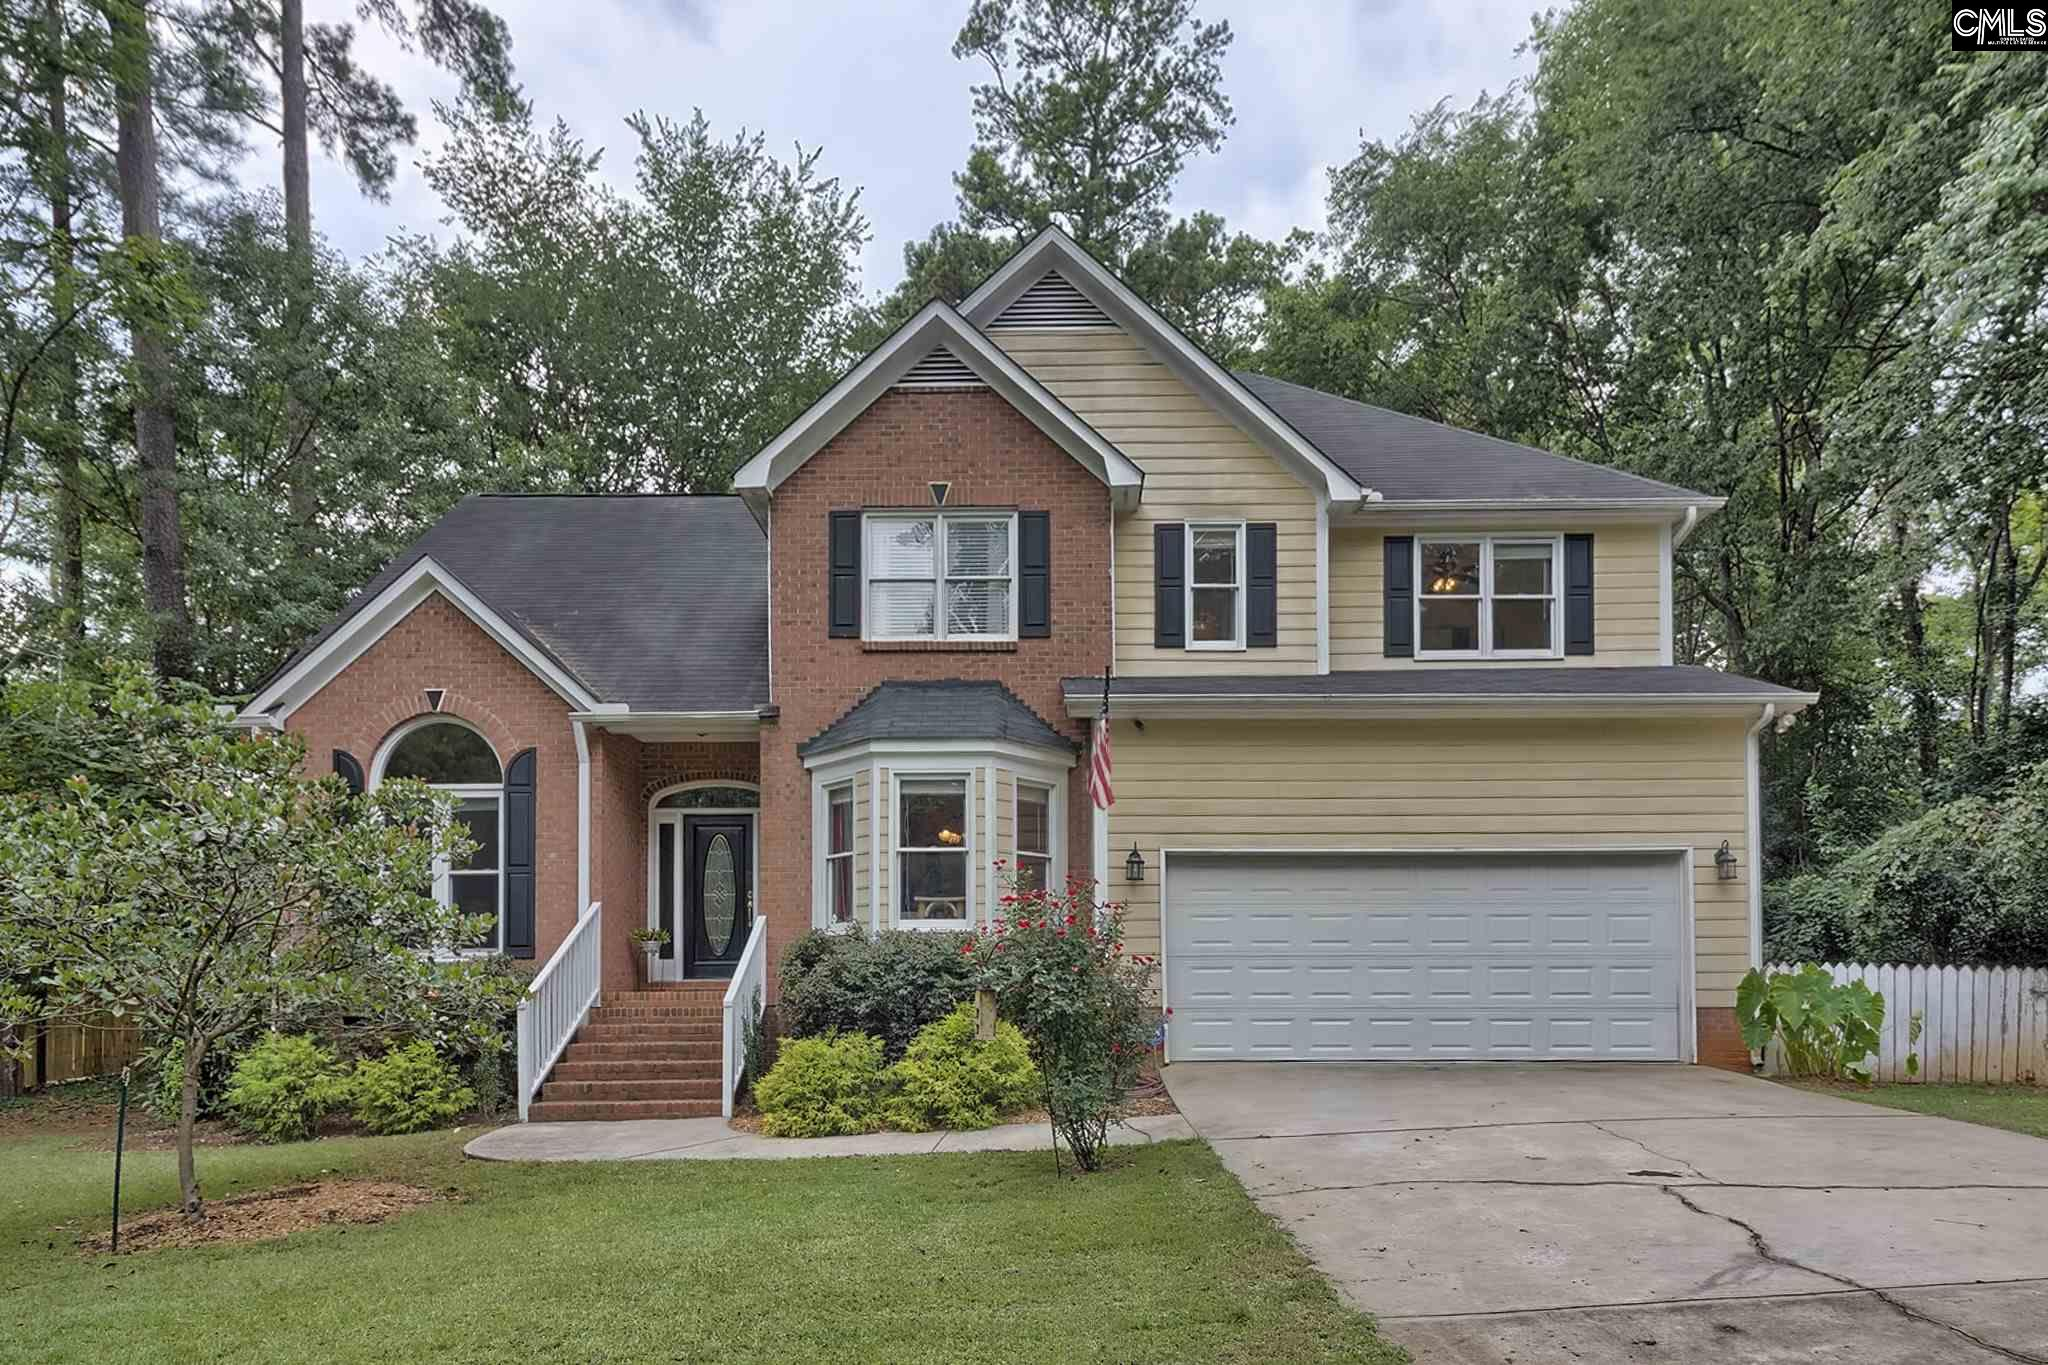 190 Hillsborough Columbia, SC 29212-3644